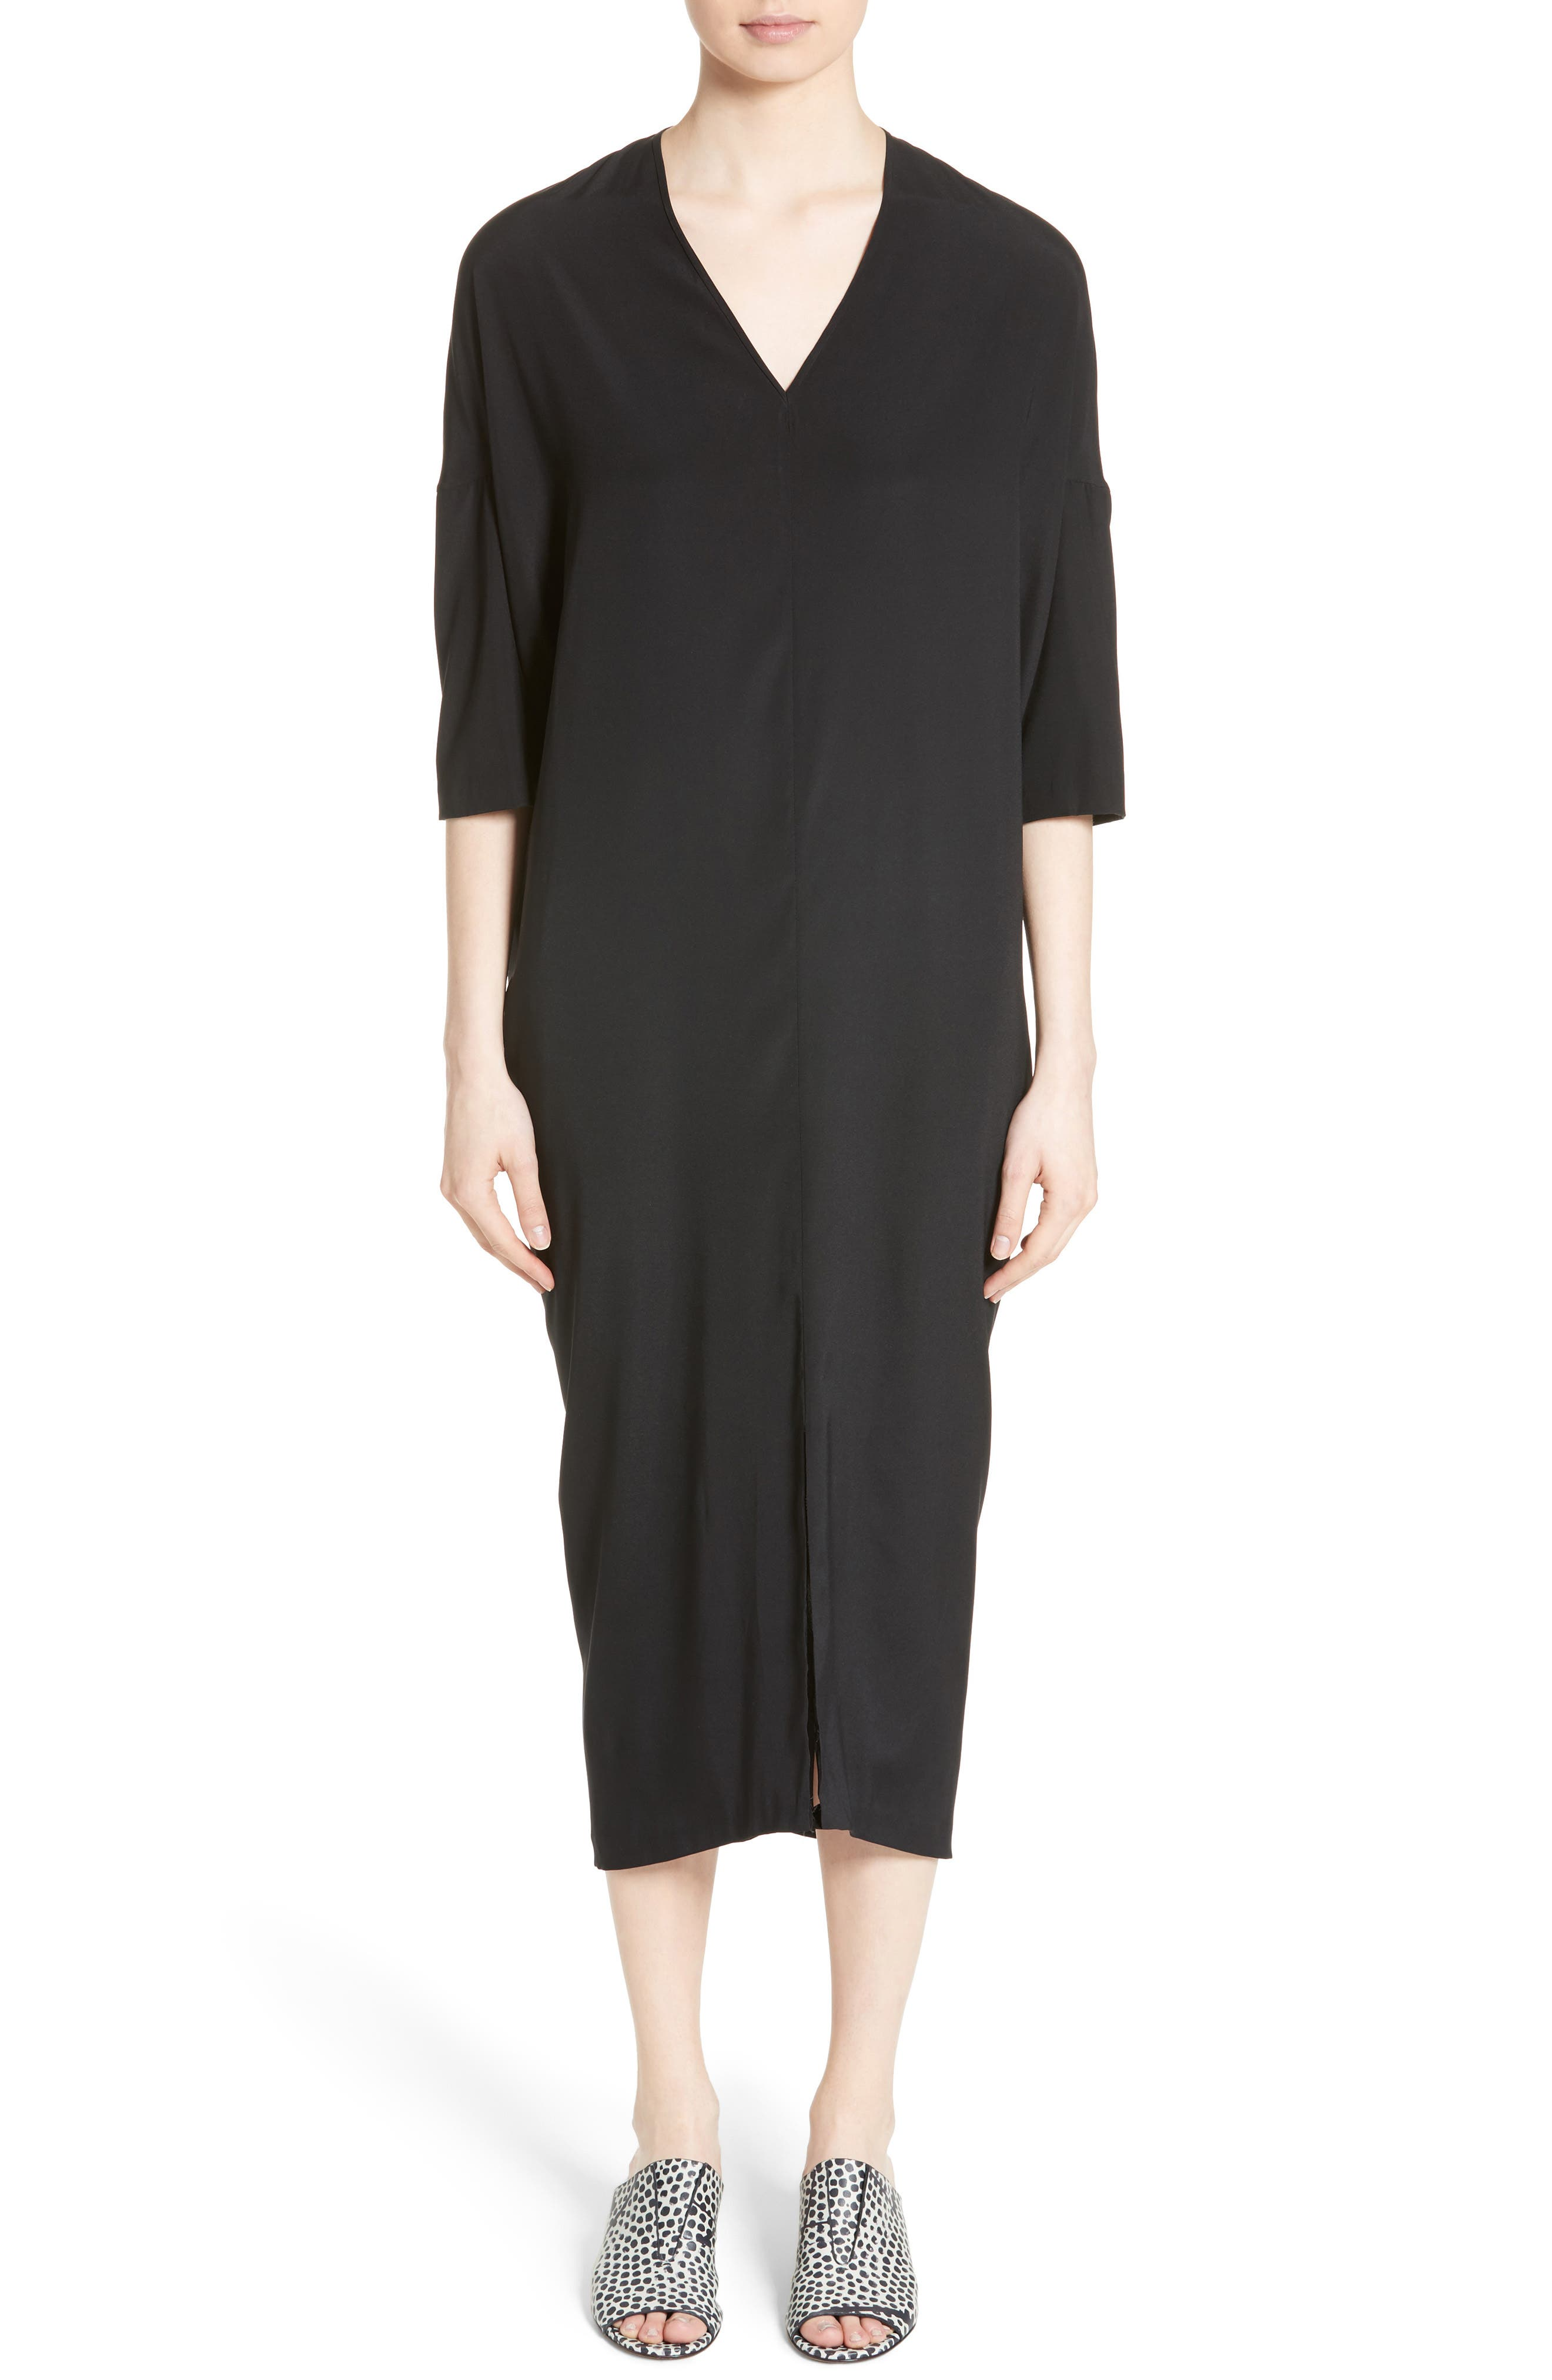 Zero + Maria Cornejo Koya Stretch Silk Charmeuse Dress